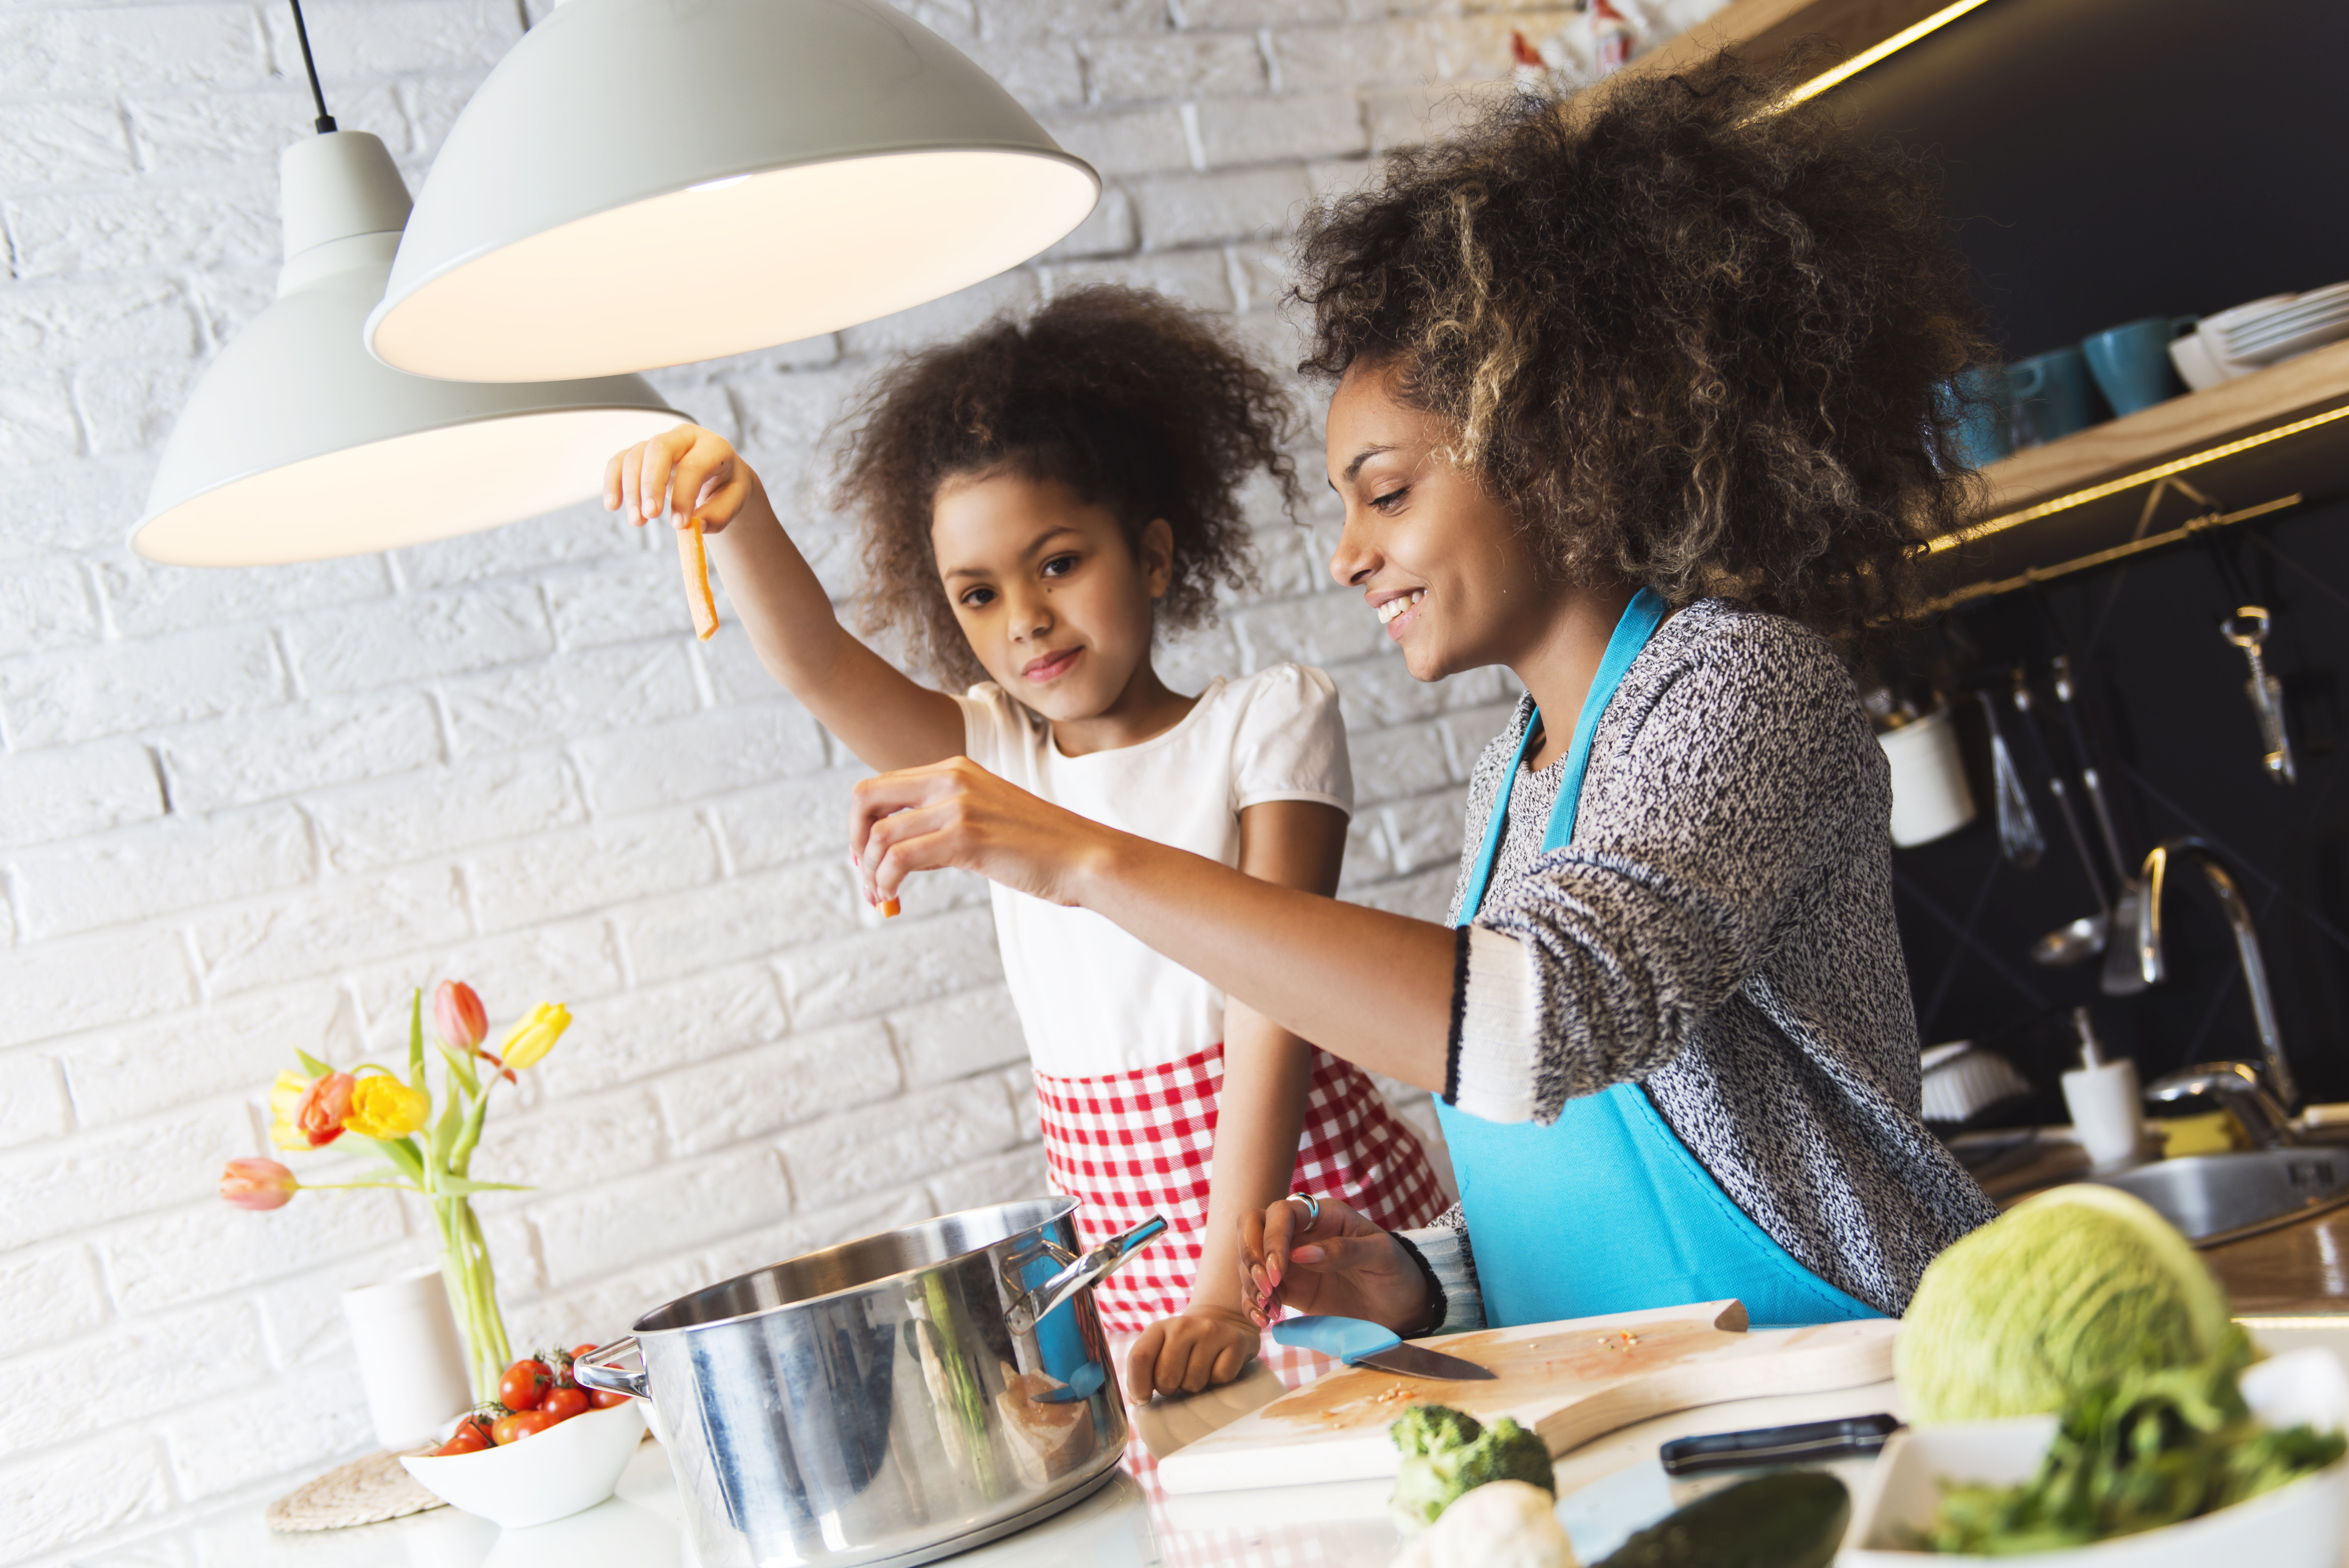 two African american women with lovely hair are making pasta in a kitchen with white brick walls